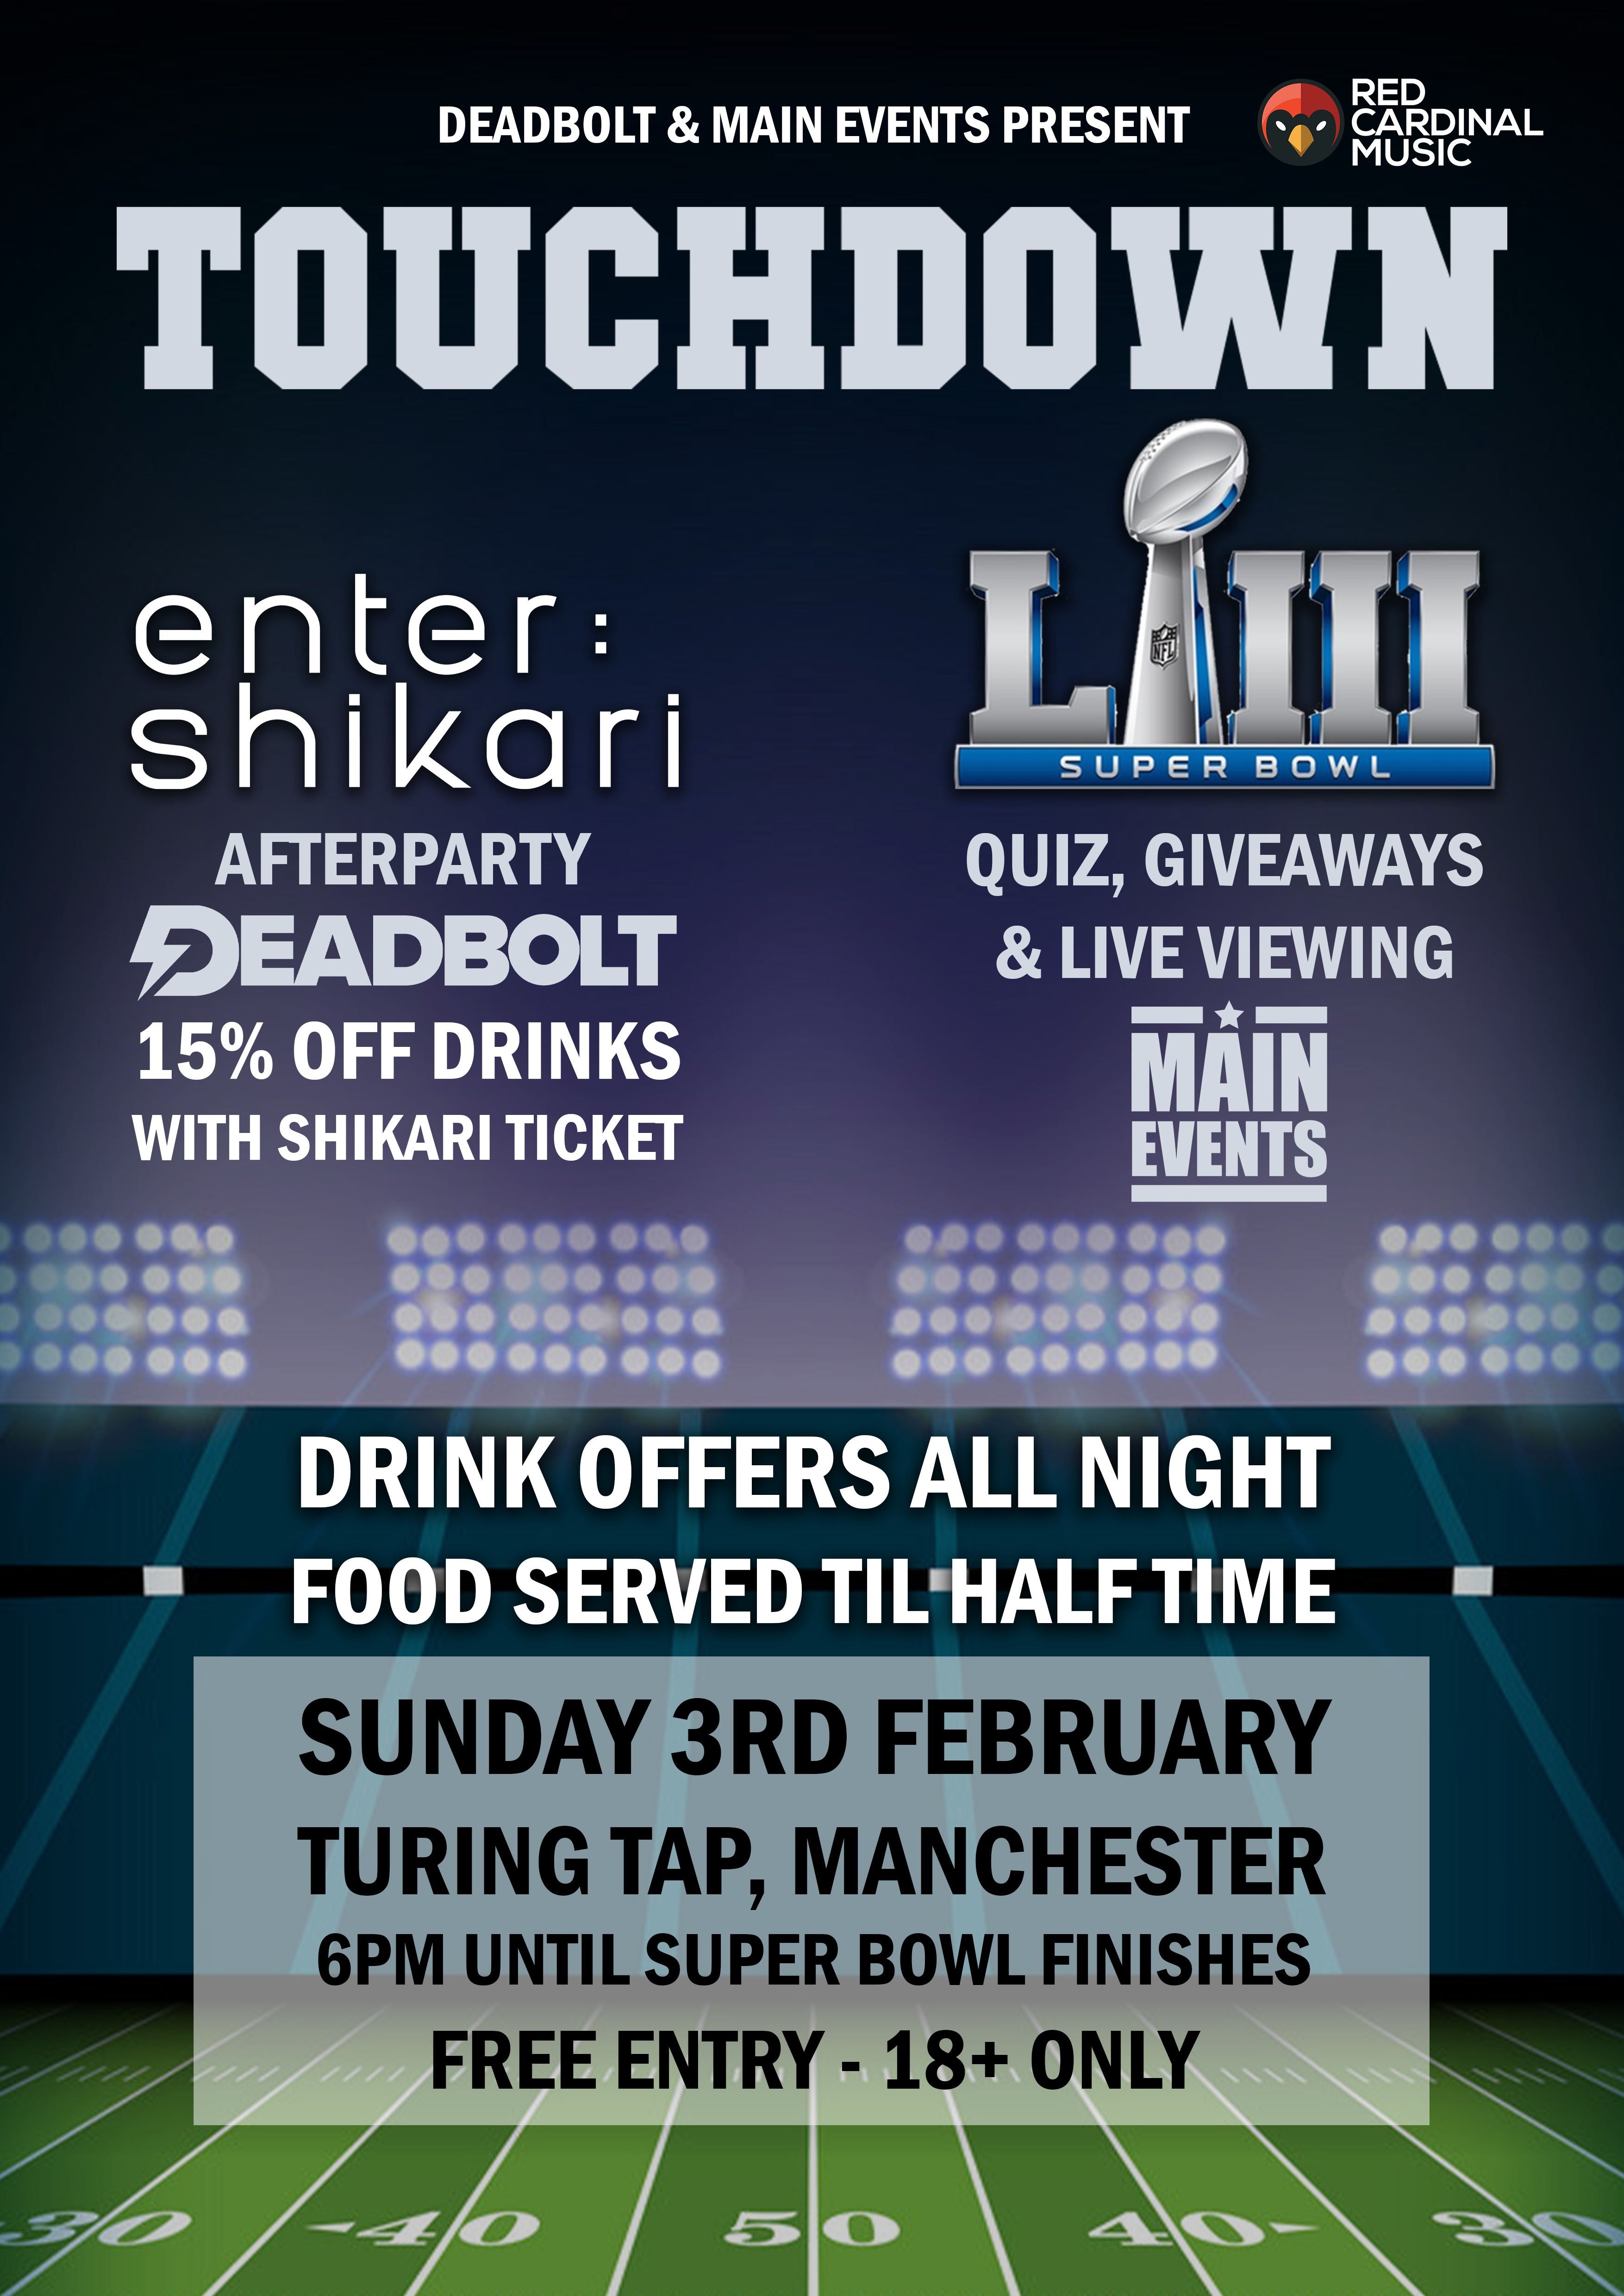 Deadbolt & Main Events - Enter Shikari & Superbowl 2019 - Turing Tap - Red Cardinal Music